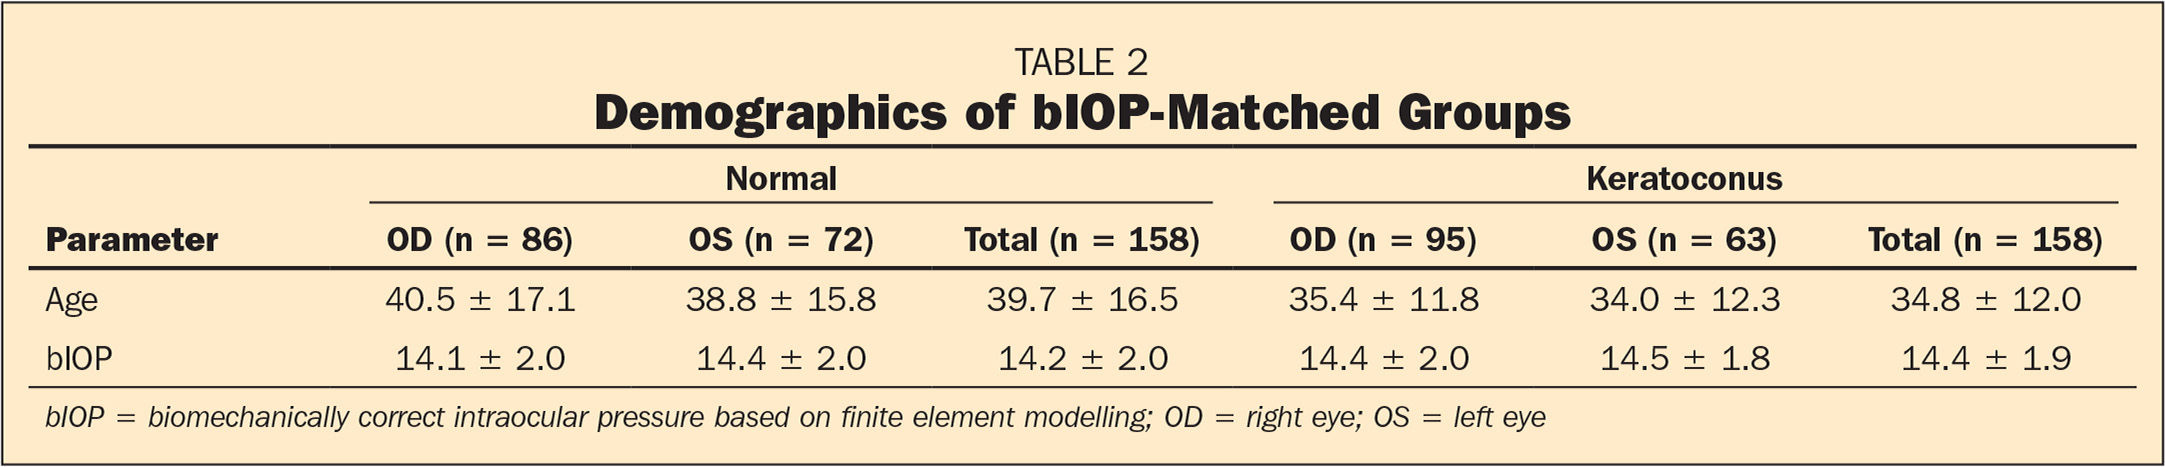 Demographics of bIOP-Matched Groups